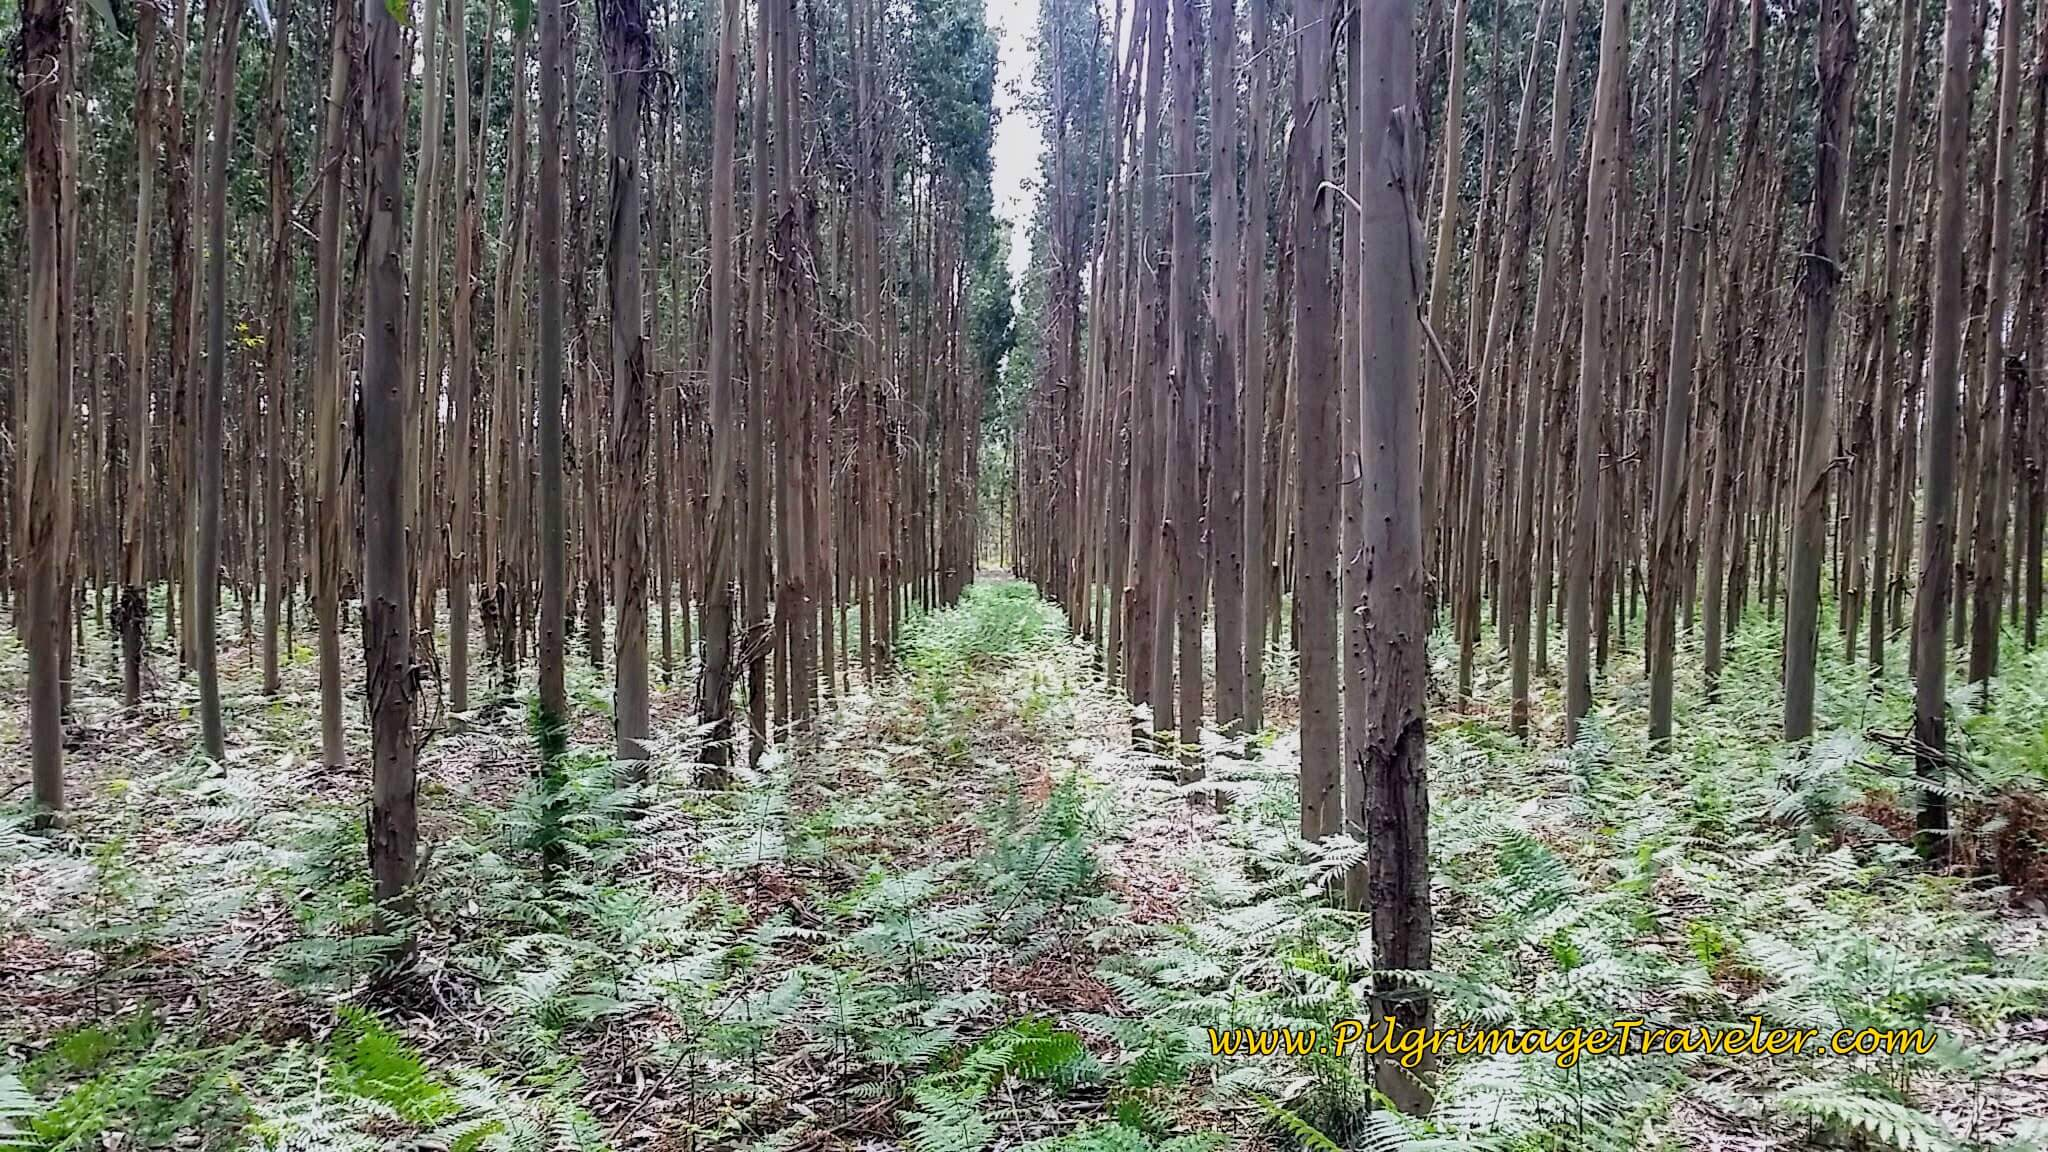 Straight Rows of Commerical Eucalyptus Forest on day twelve of the Camino Portugués